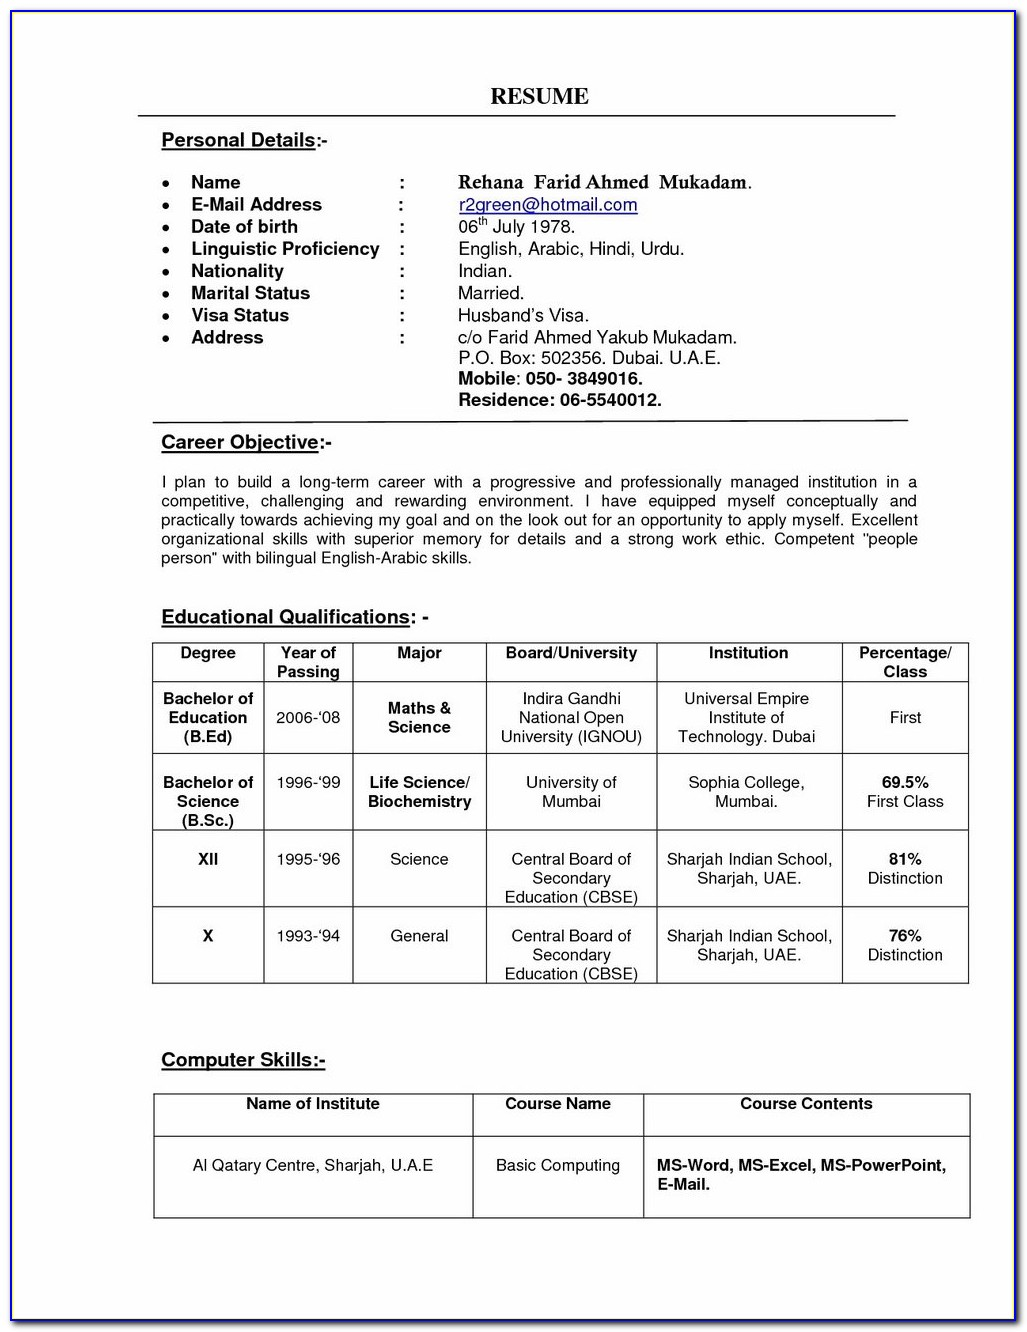 Resume Format Free Download In Ms Word 2017